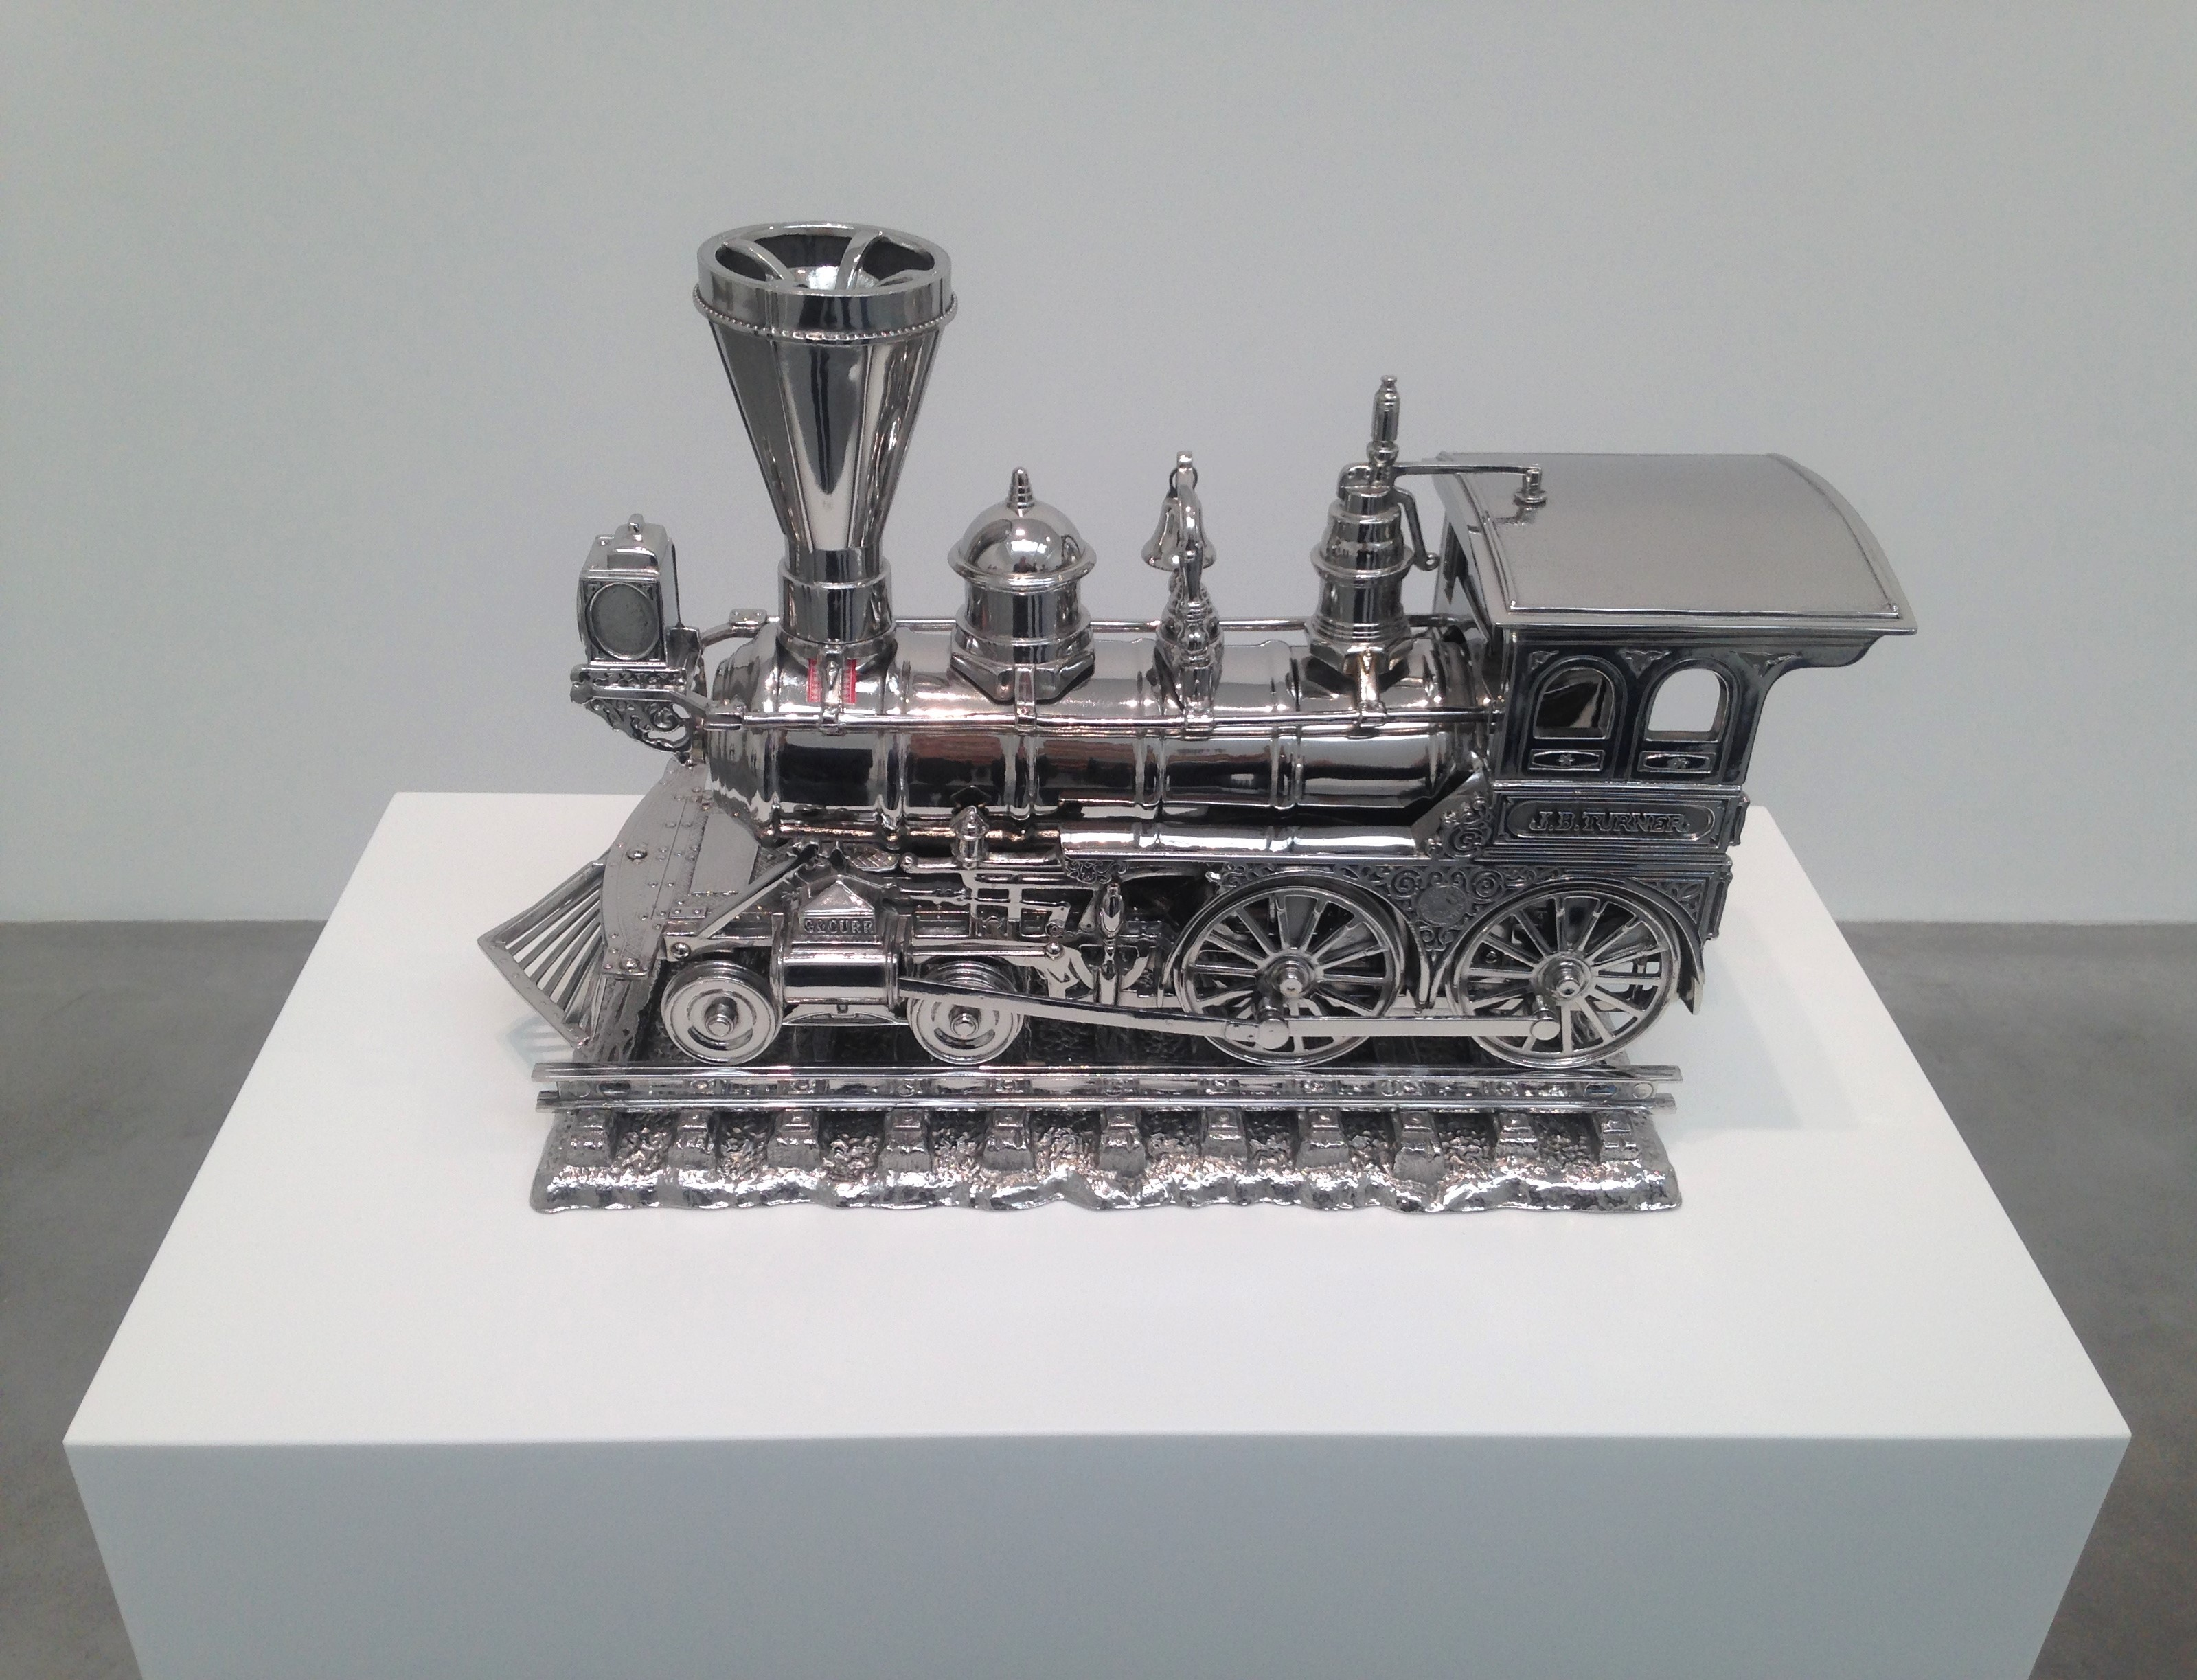 Jim Beam JB Turner engine - Jeff Koons - kenningtonrunoff.com